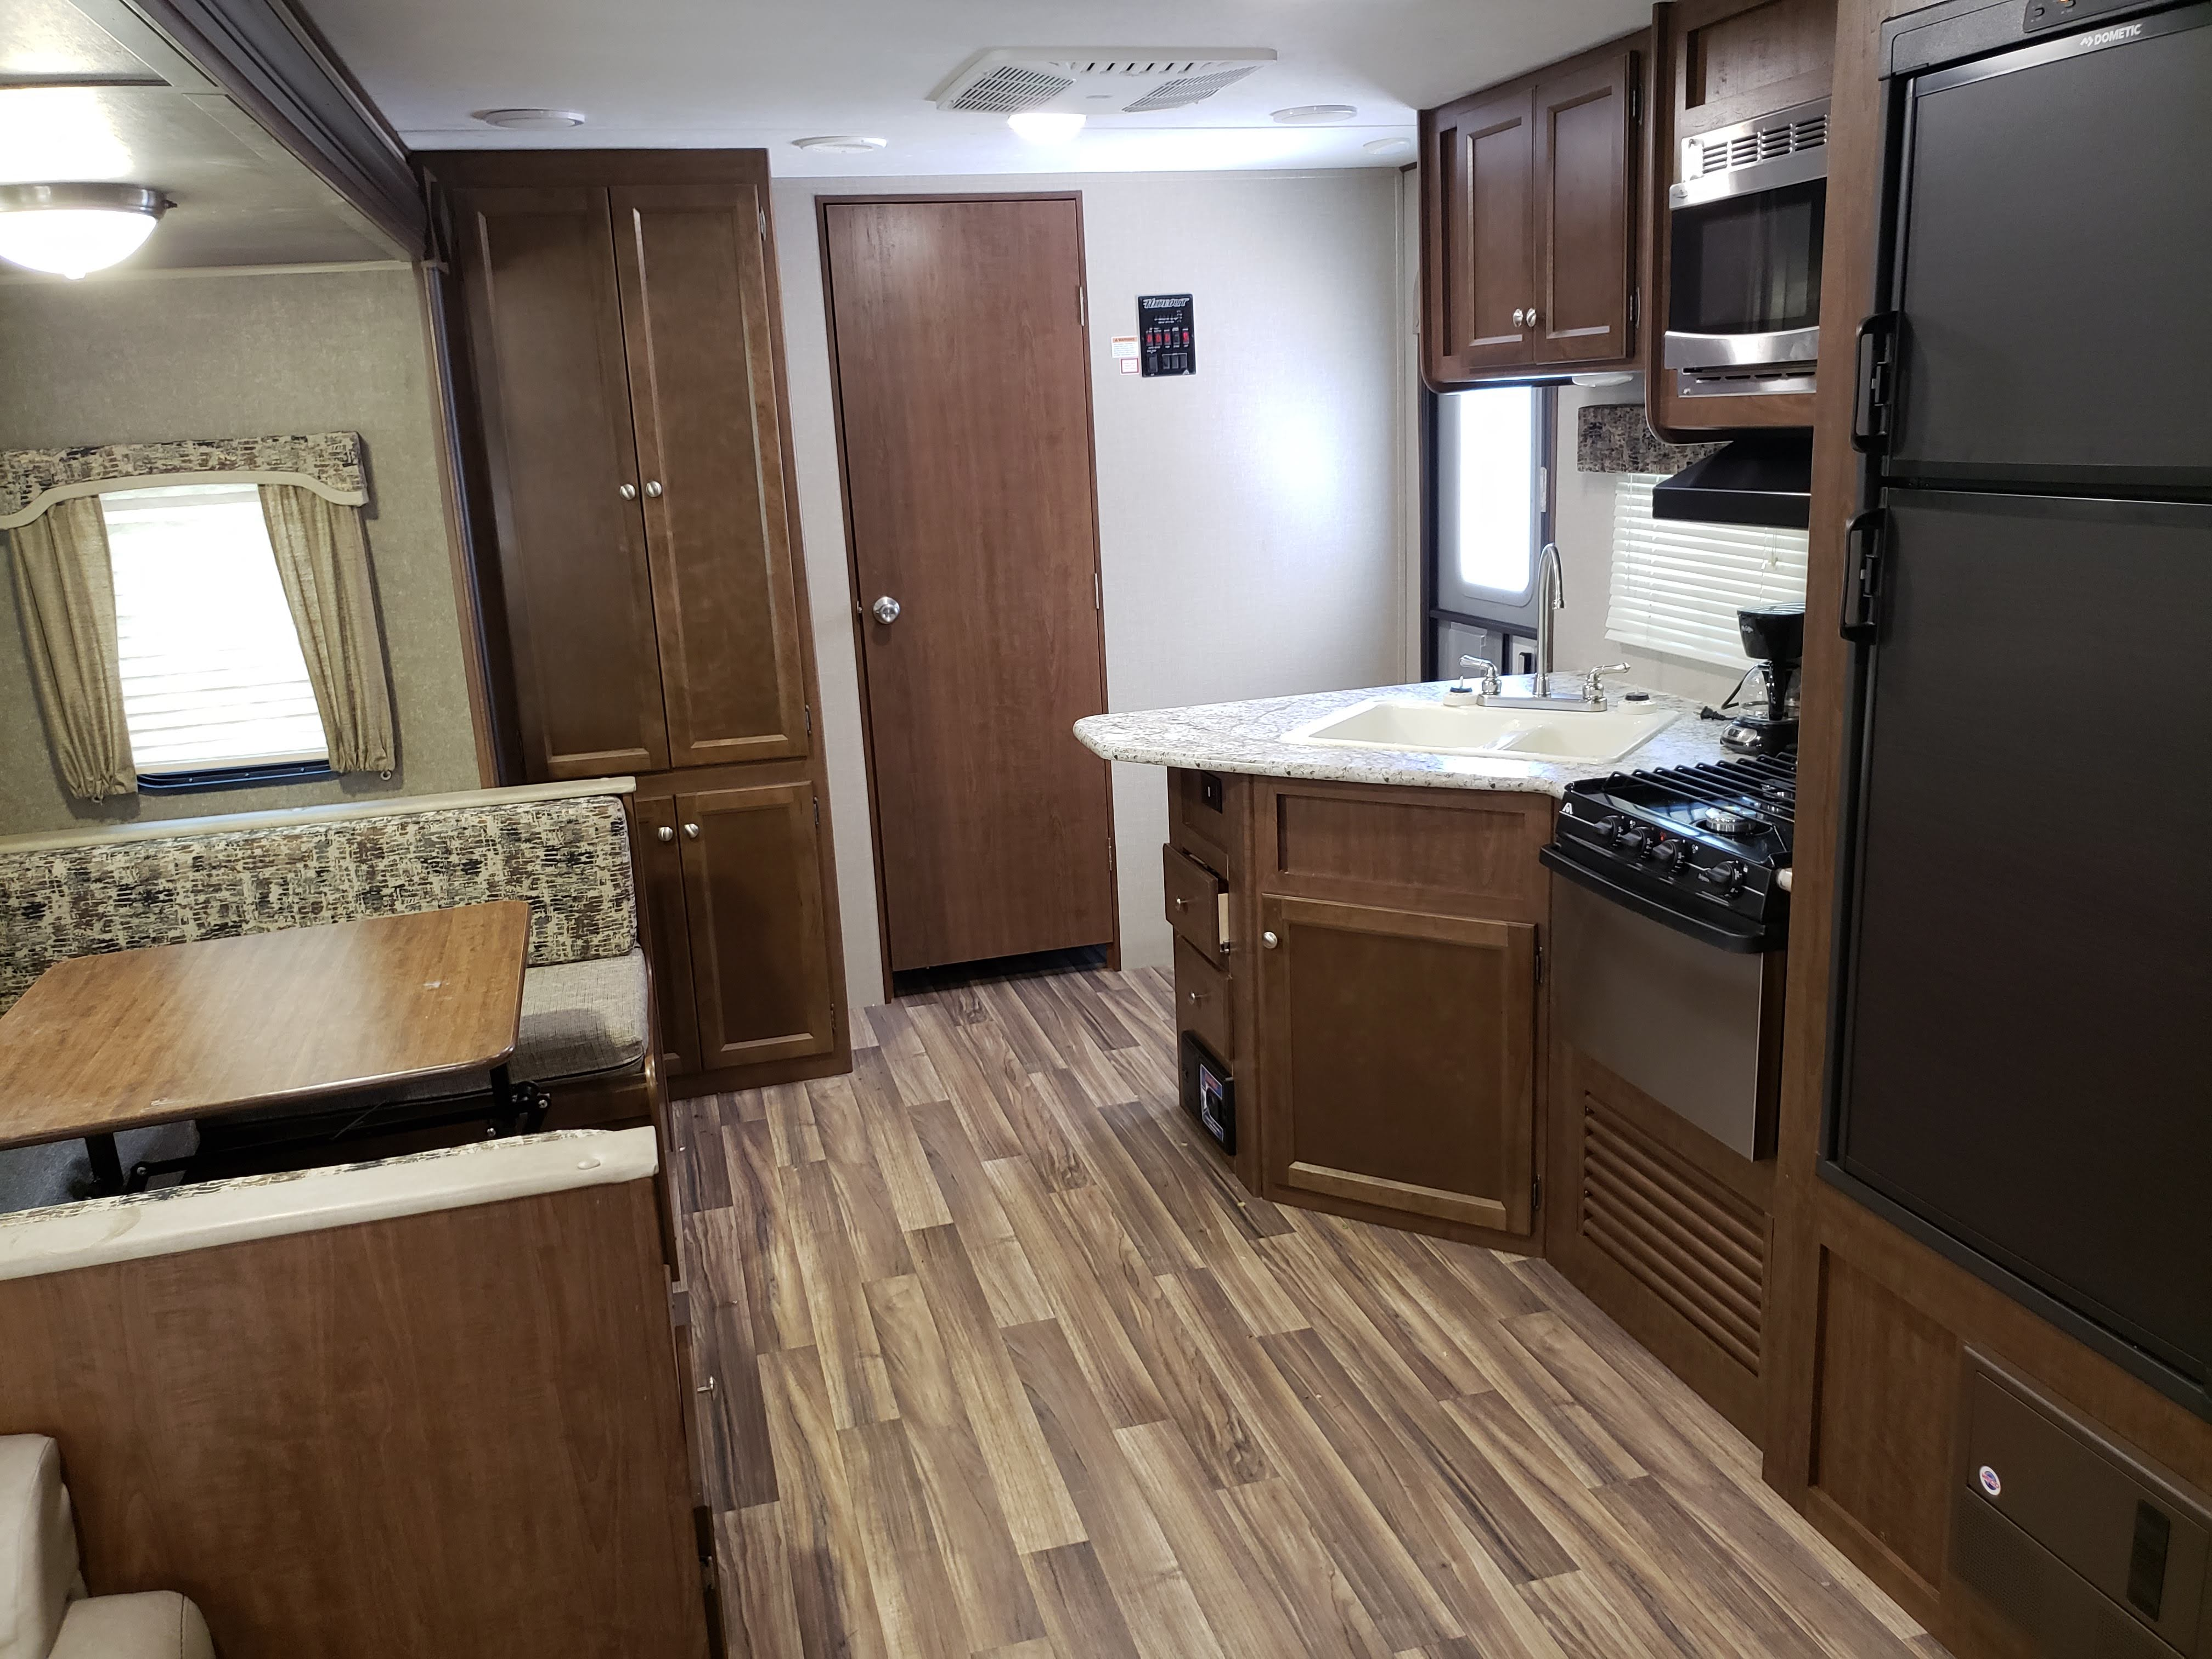 "Spacious kitchen and dining area including: U-shaped bench with table, Sink, Gas Stovetop/Oven, Microwave, Fridge/Freezer, Closet/Cabinet Space, and Door leading to the ""Master"" bedroom.. Keystone Hideout 2017"